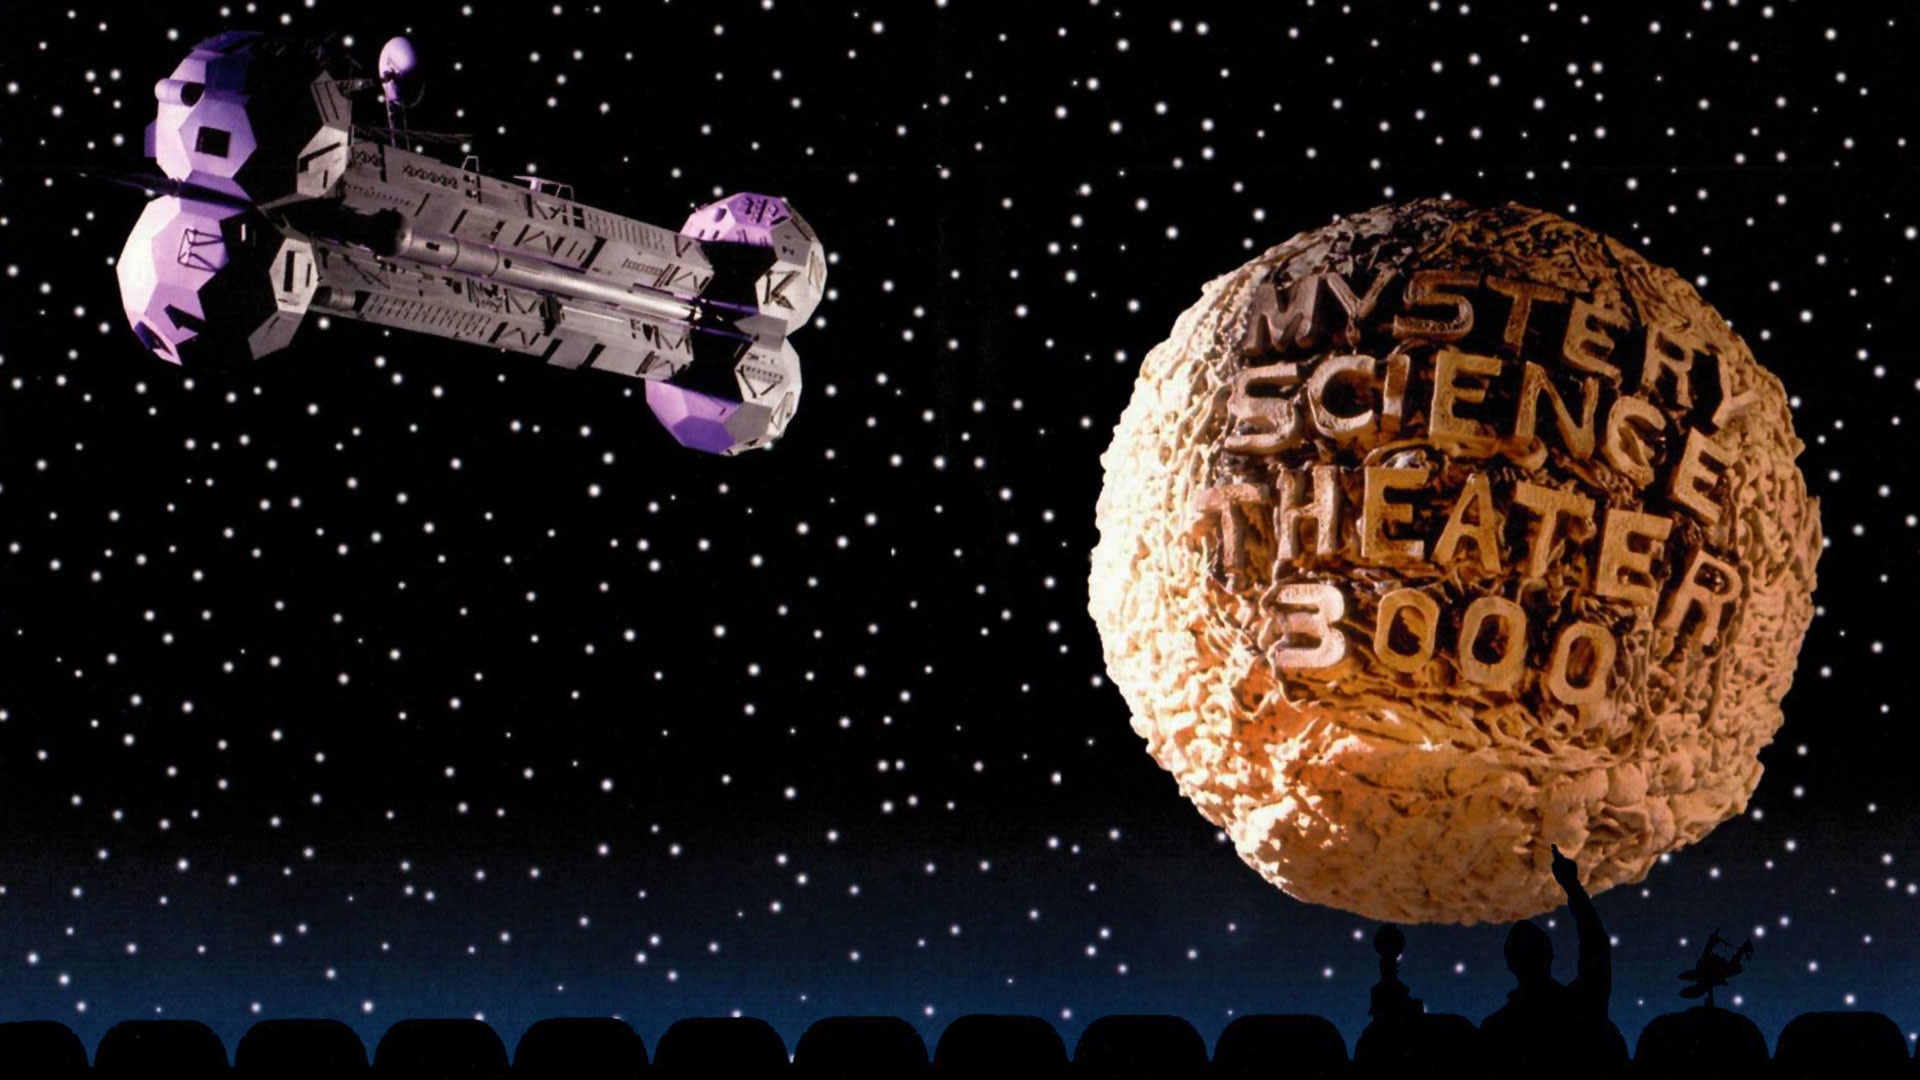 1920x1080 Cleaned up this MST3K image as a wallpaper, thought I'd share ...